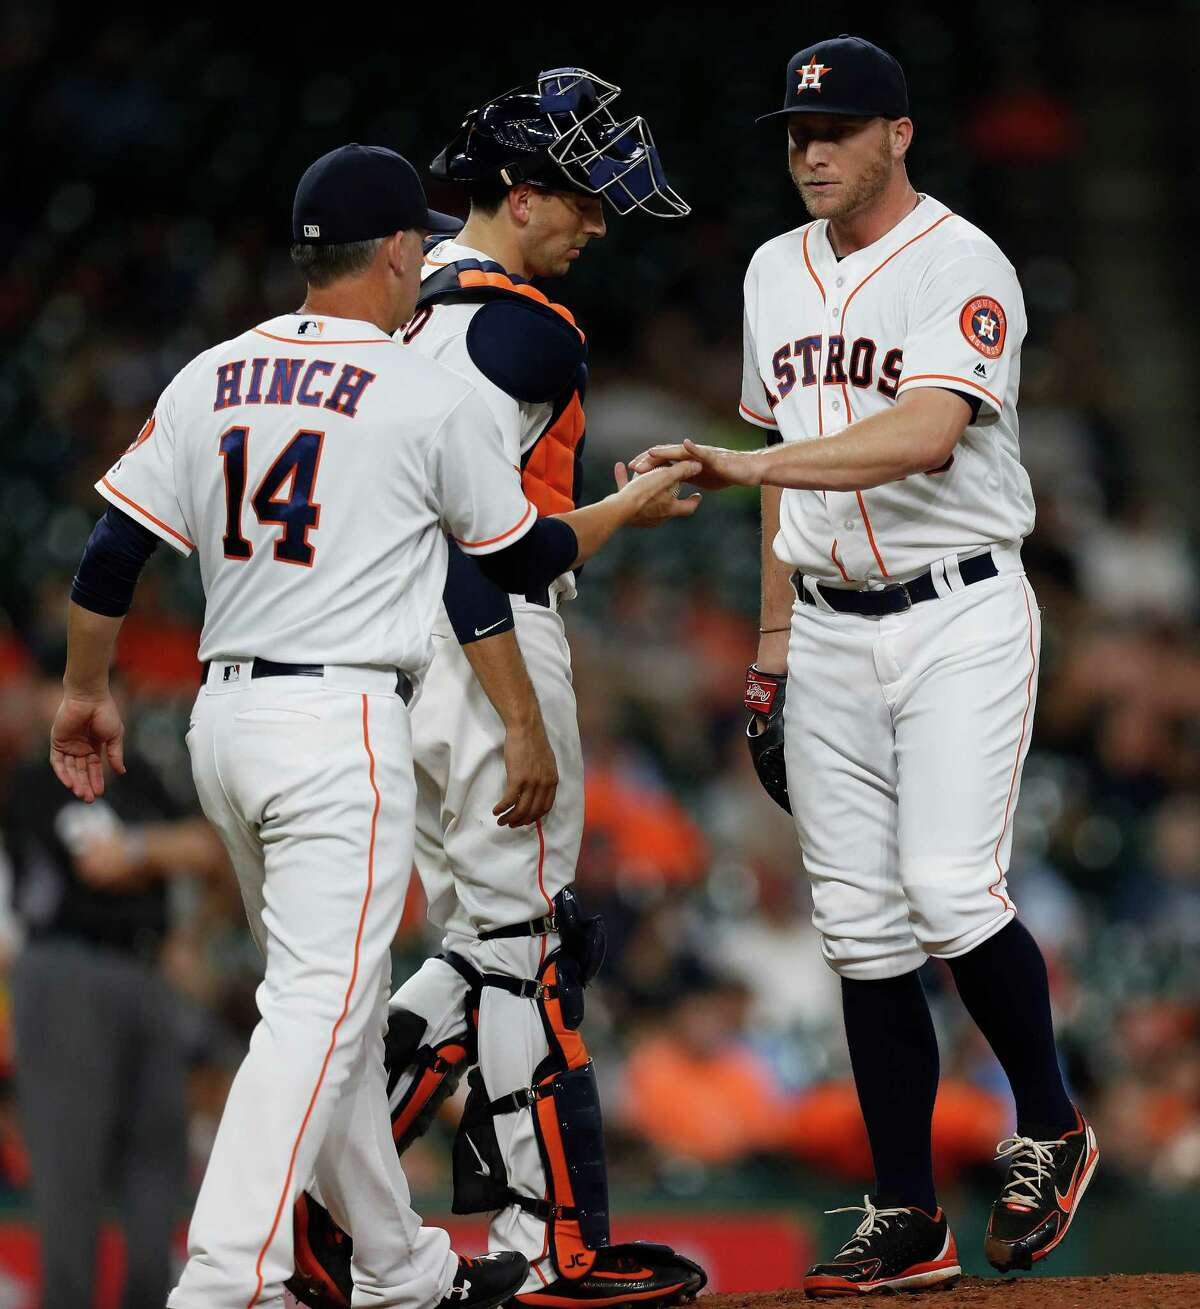 Houston Astros relief pitcher Kevin Chapman (50) gets pulled from the game by manager A.J. Hinch (14) during the sixth inning of an MLB game at Minute Maid Park, Tuesday, Sept. 27, 2016 in Houston.